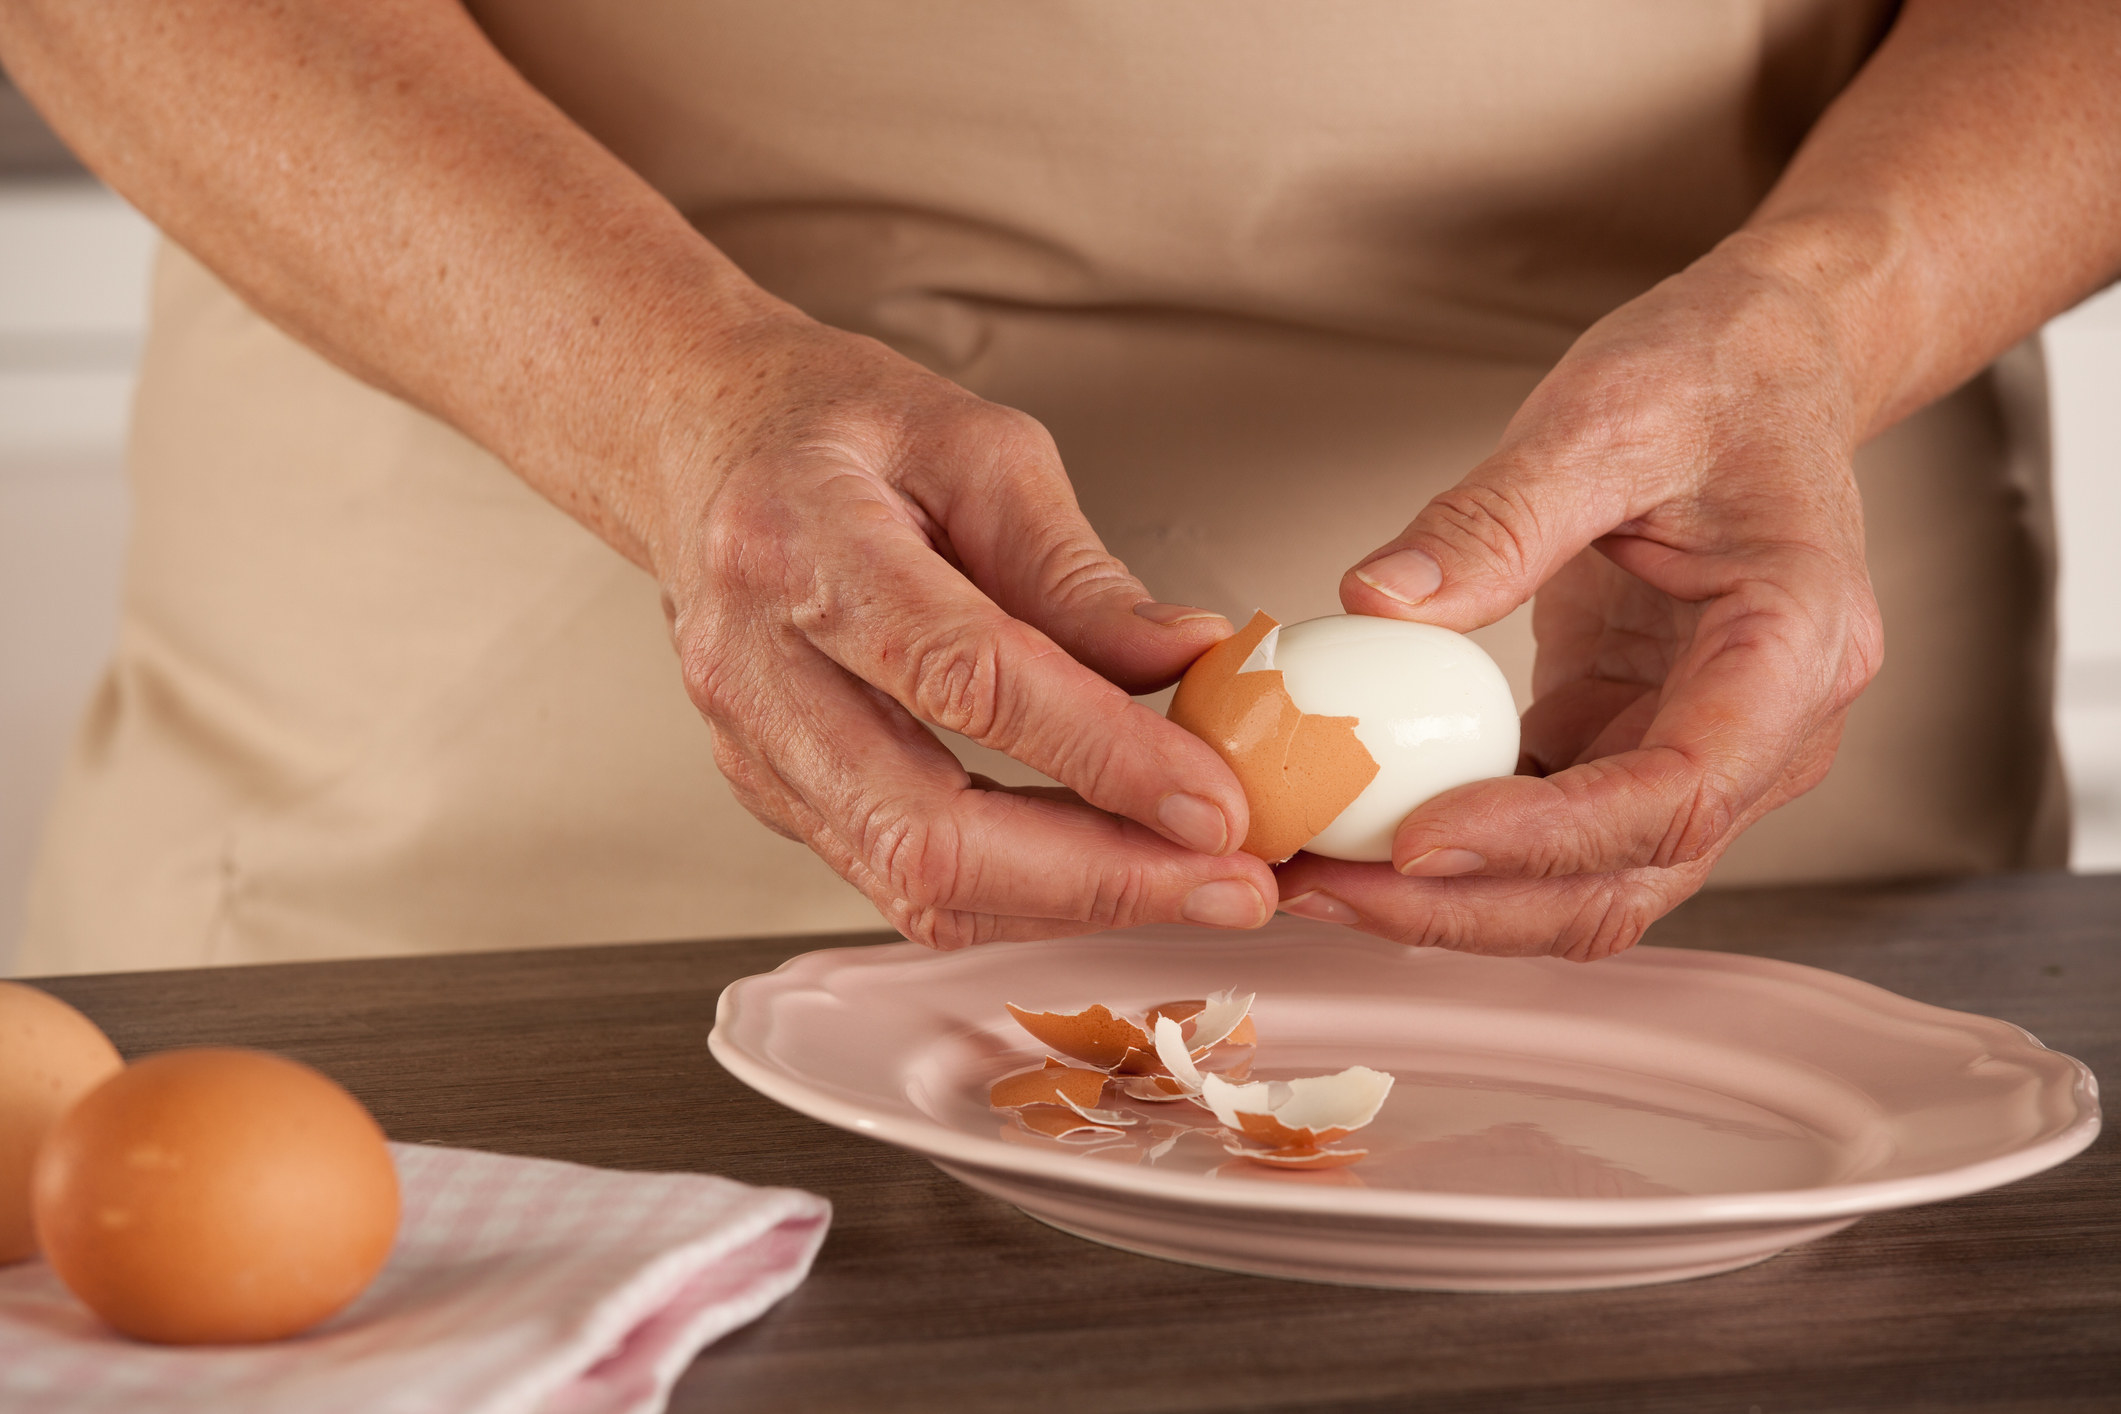 Hands peel the shell of a boiled egg